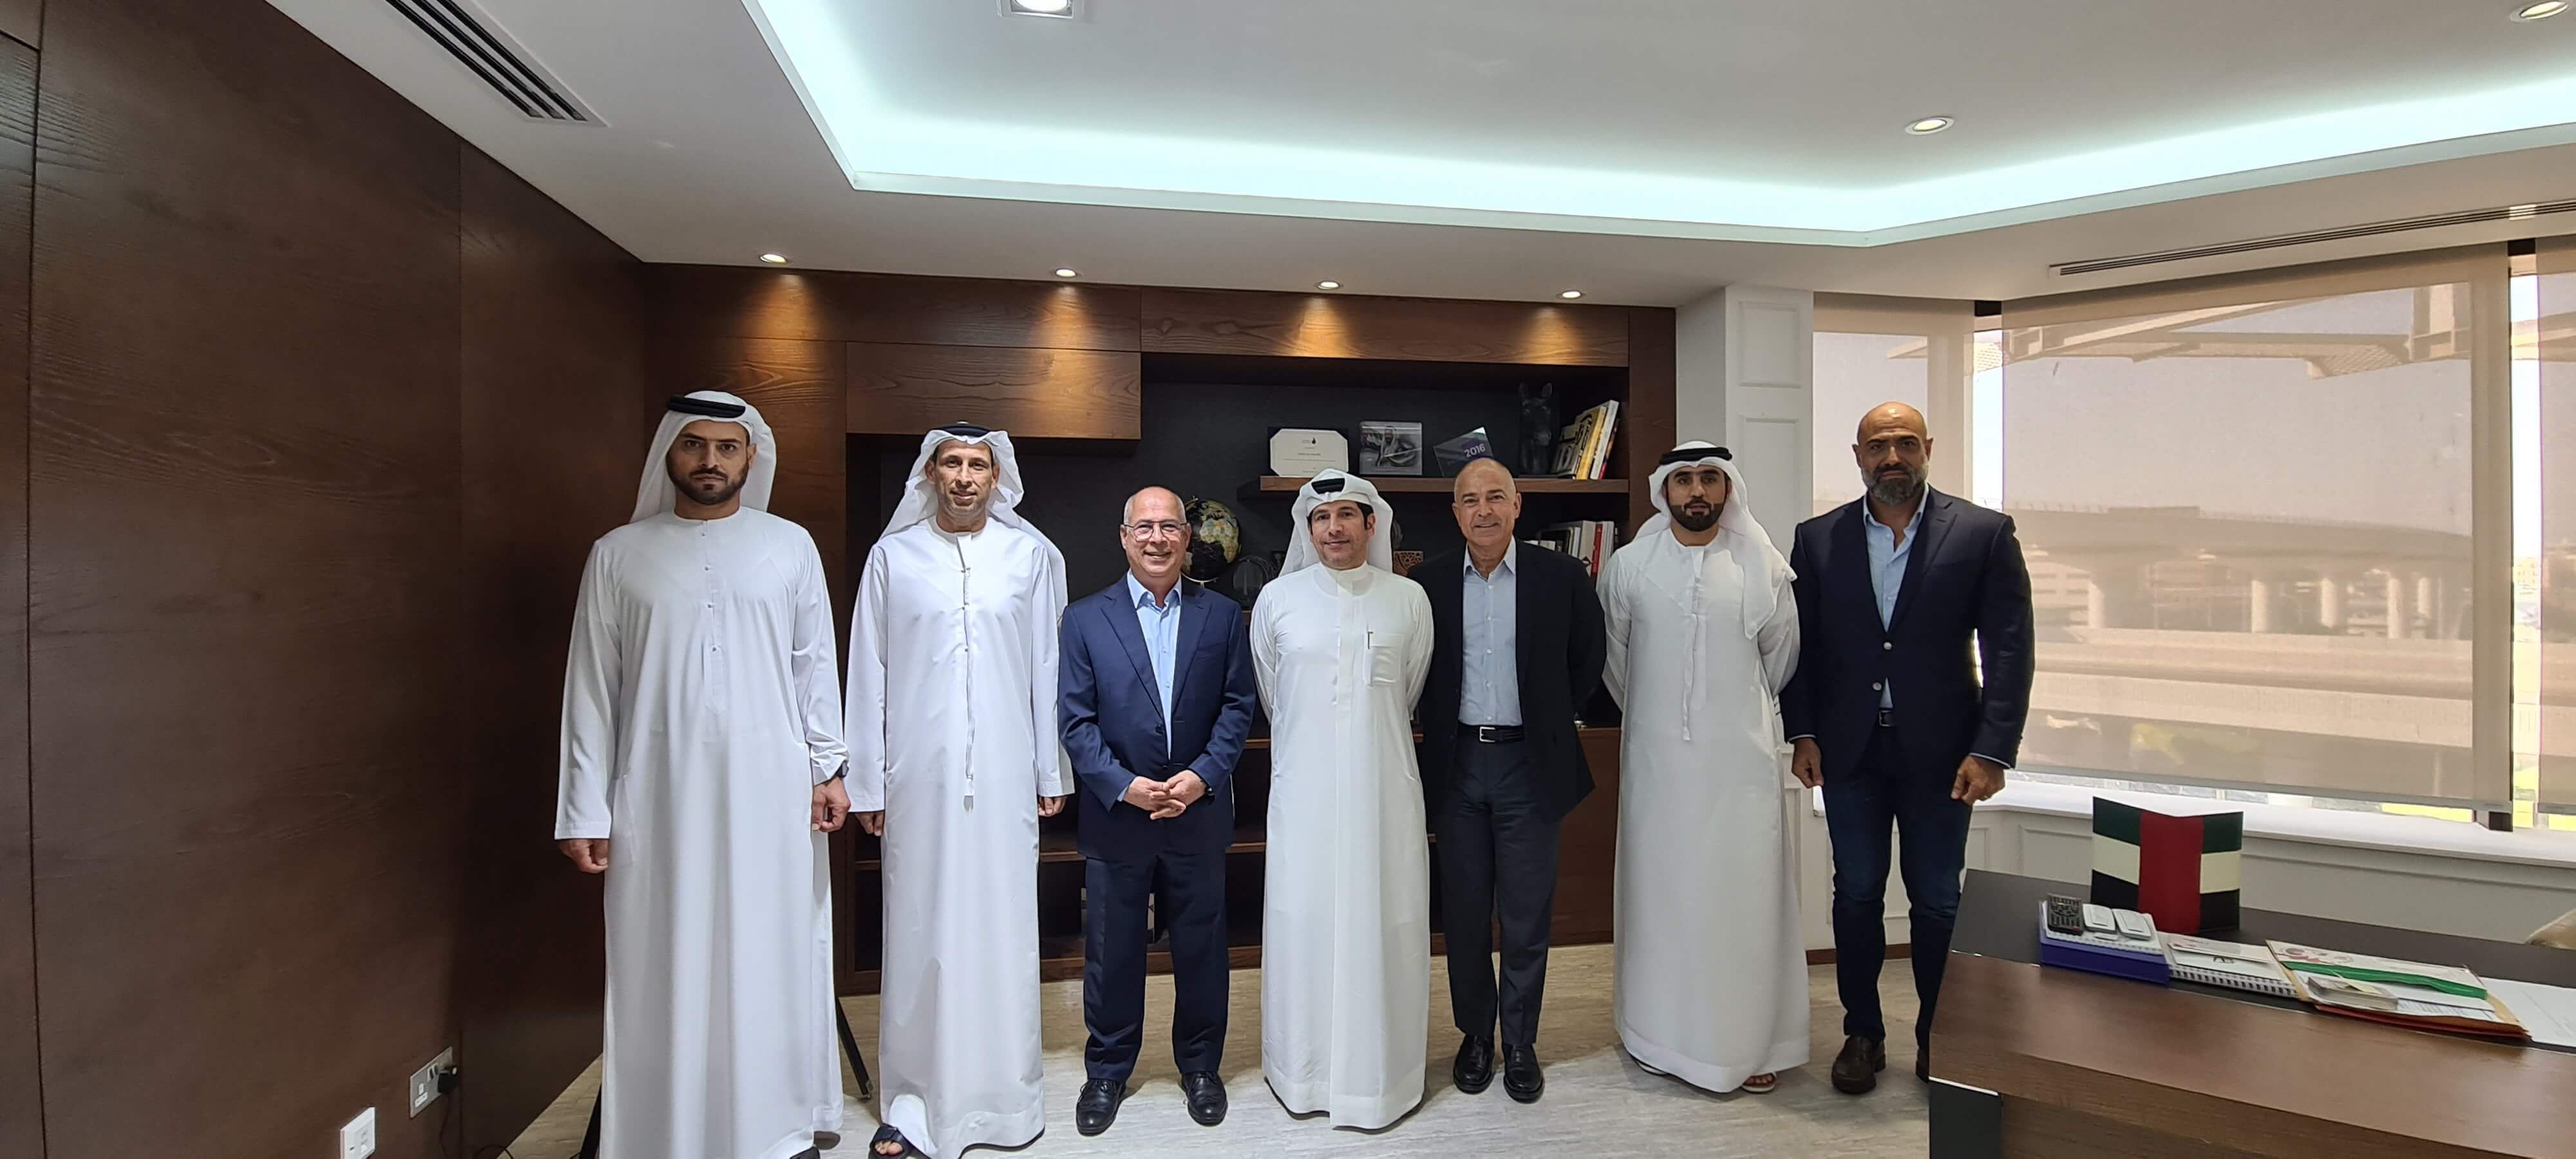 dubai-media-incorporated-dmi-renews-its-media-representation-contract-with-choueiri-groups-mems